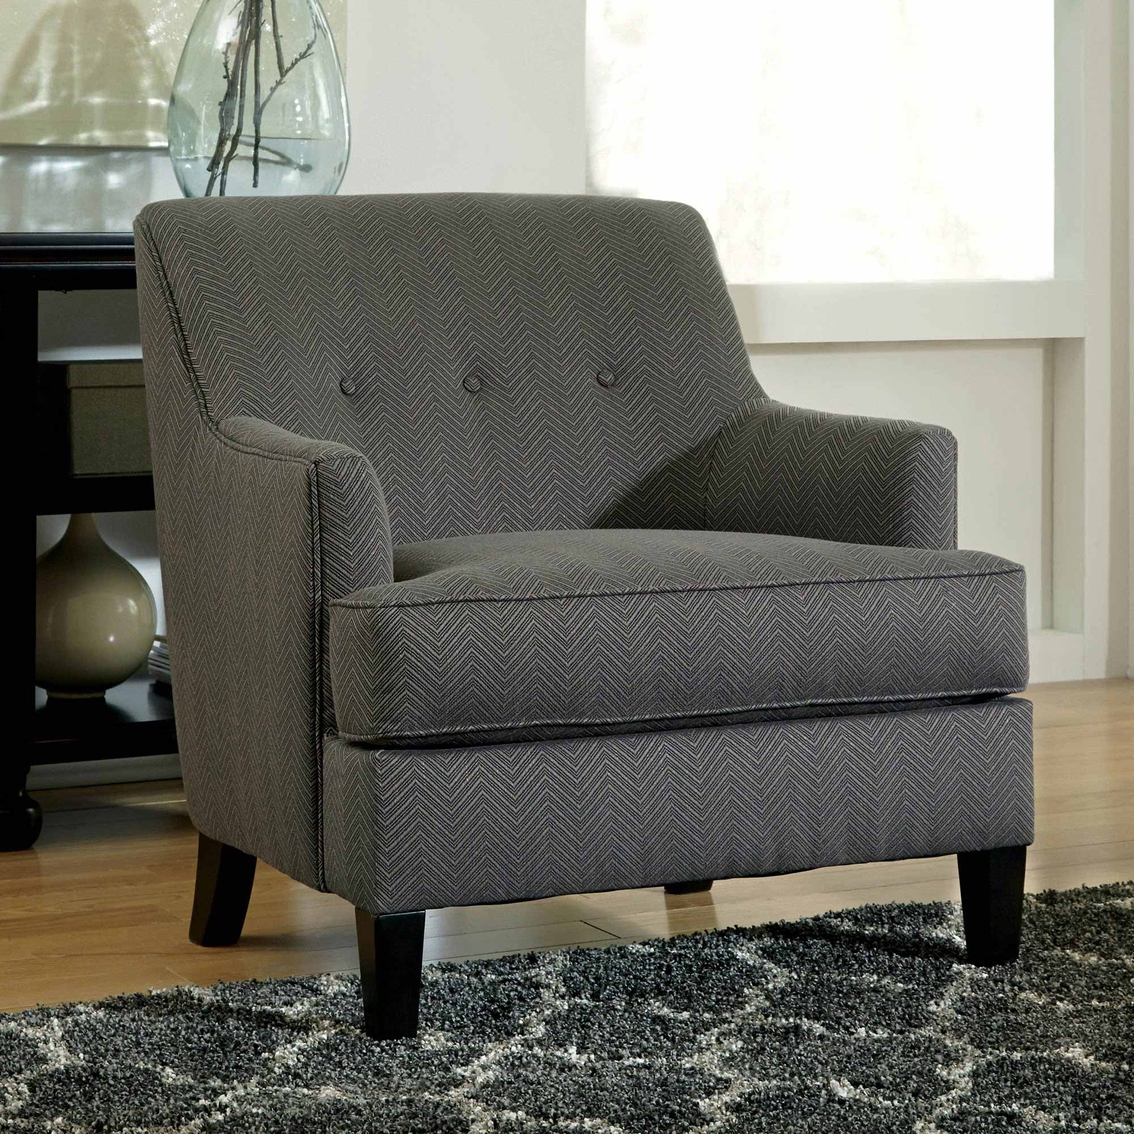 Signature Design By Ashley Crislyn Accent Chair